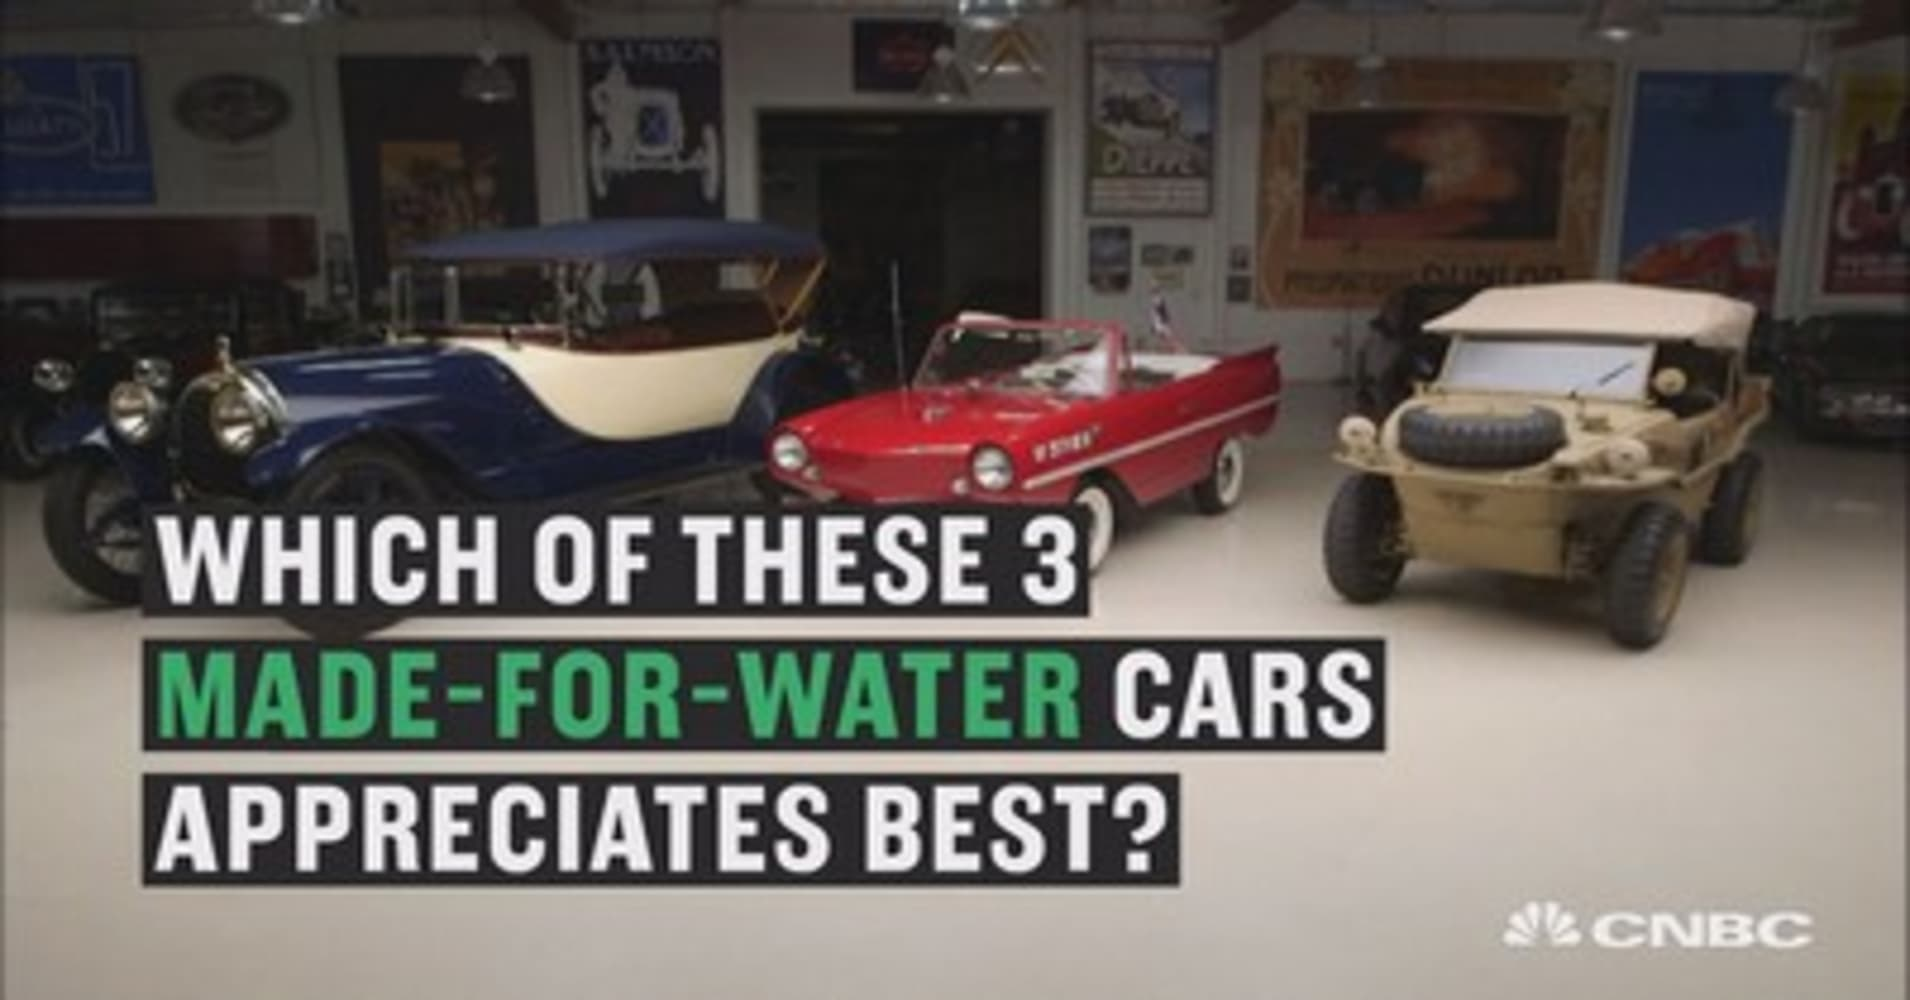 Schwimmwagen vs Amphicar: Guess which made-for-water car is most ...